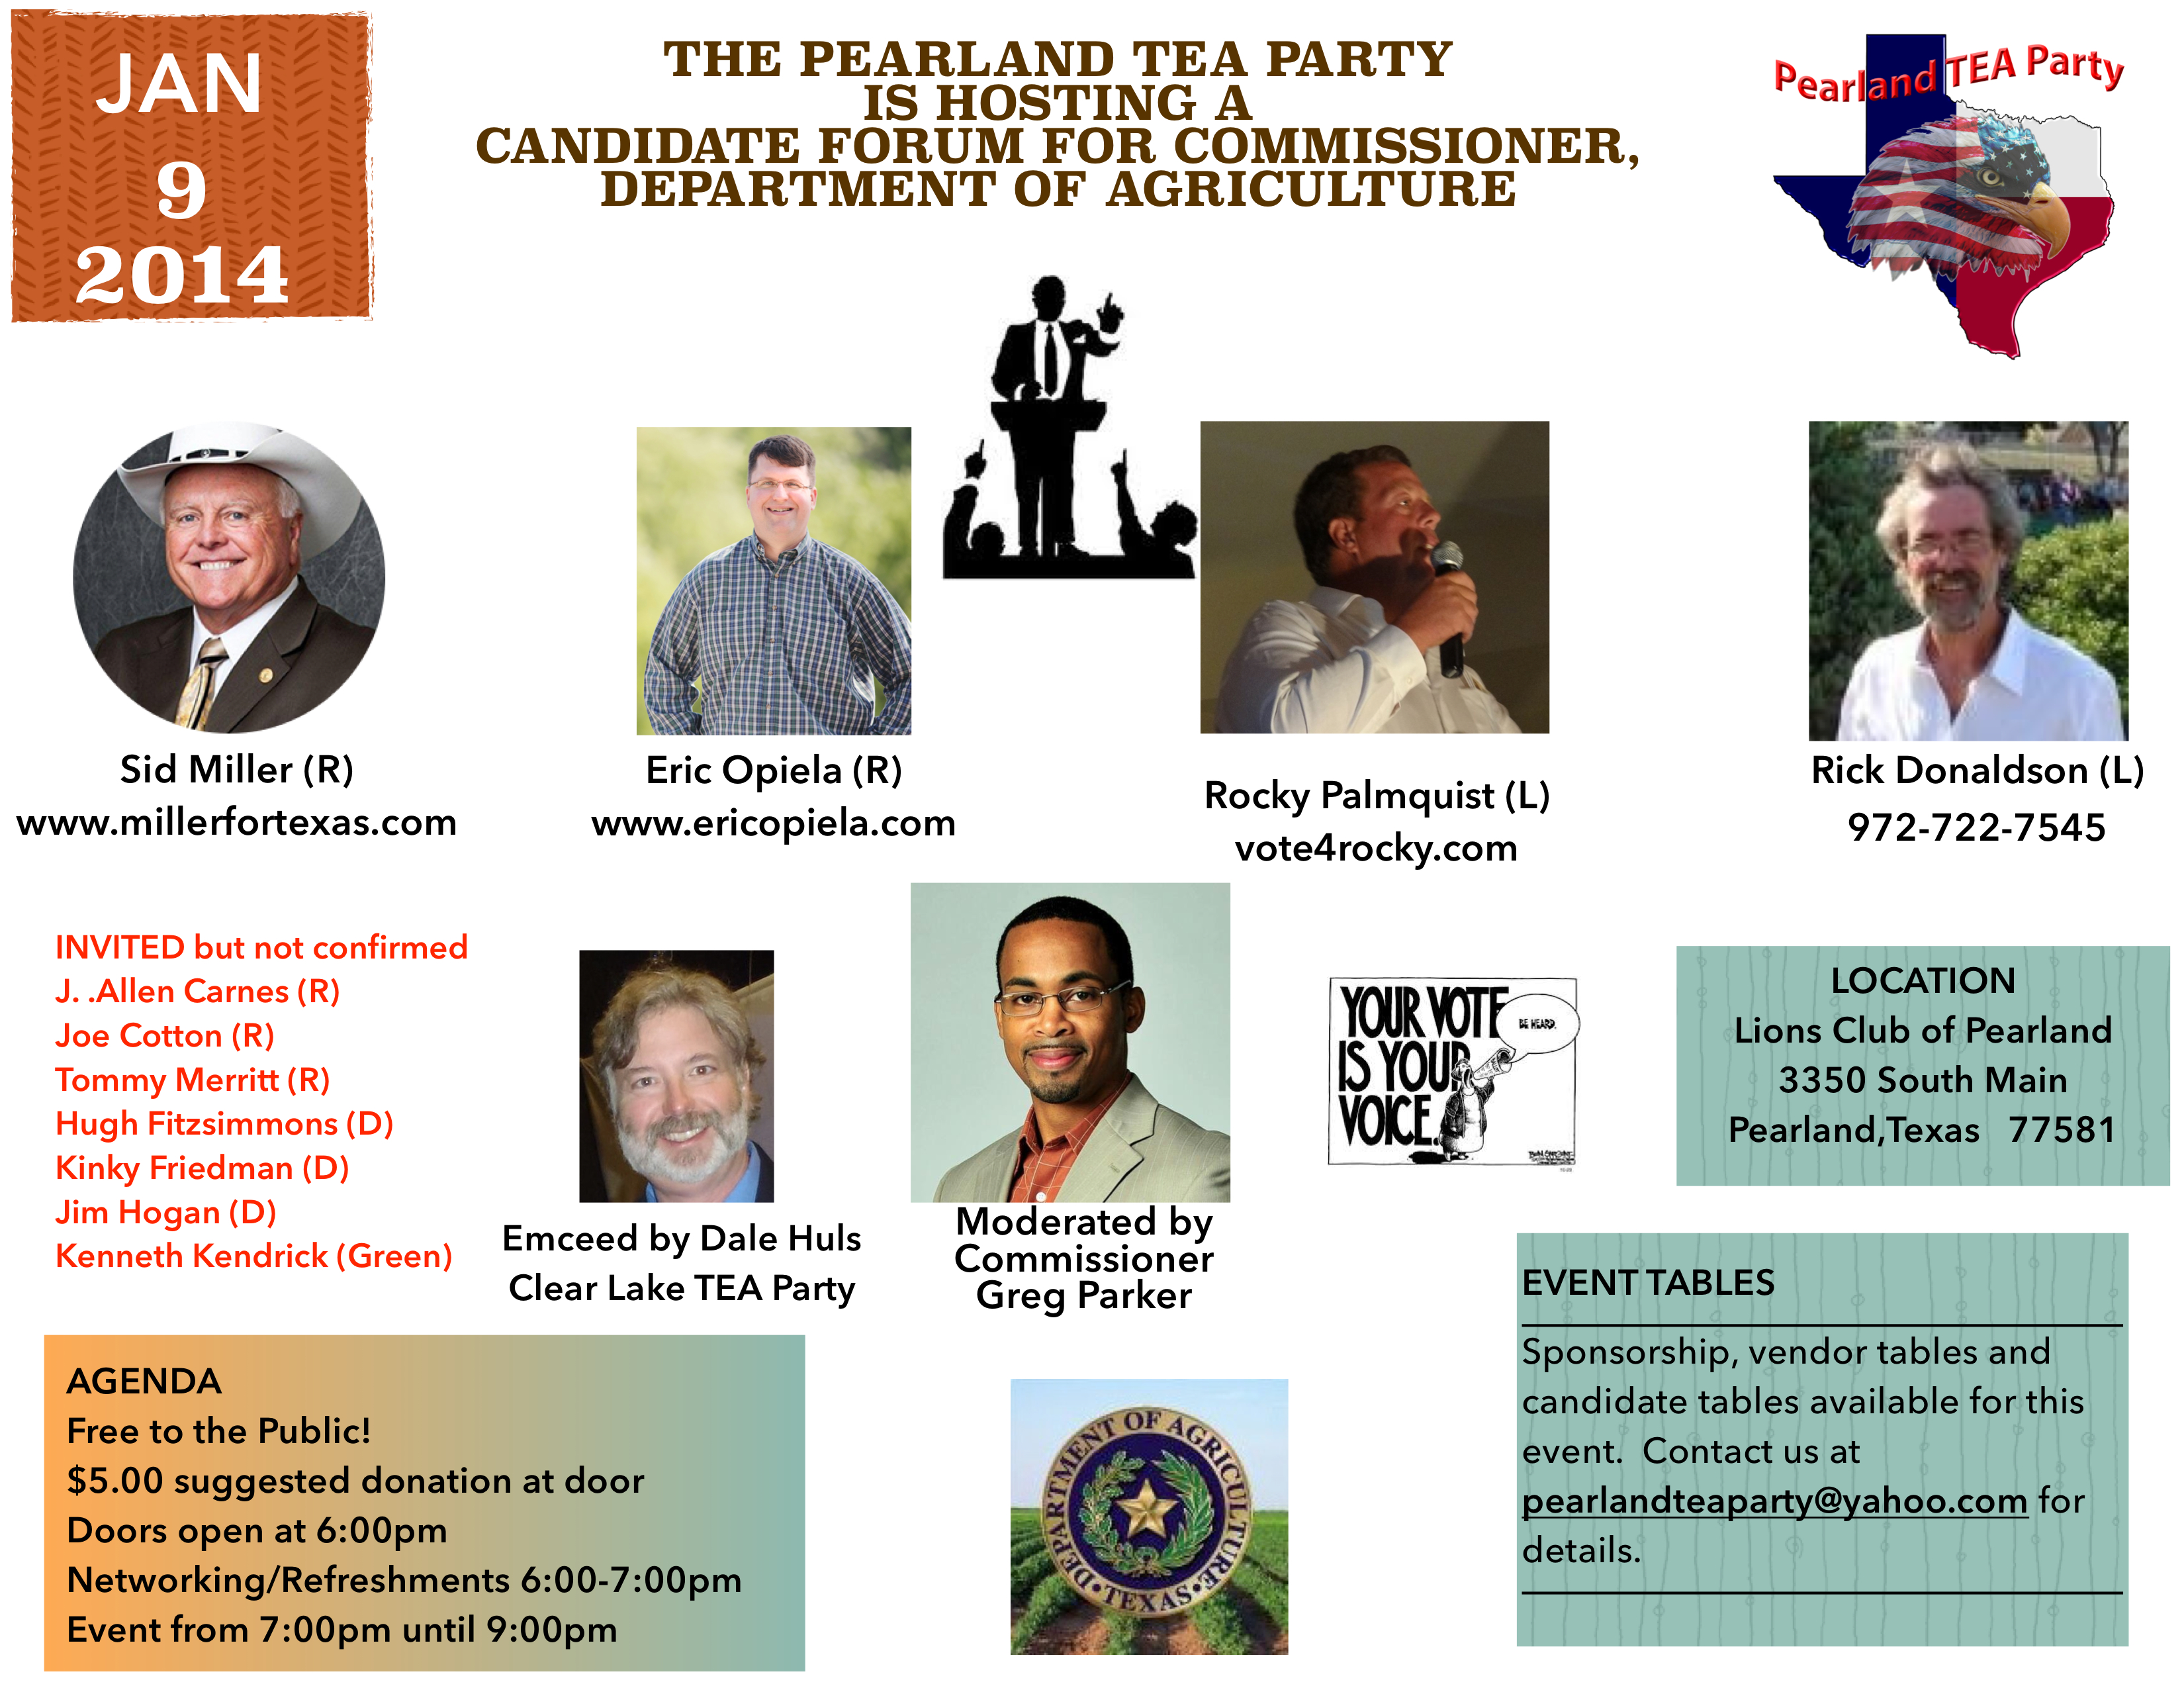 ... Commissioner Jan 9, 2014 at 6:00pm hosted by the Pearland TEA Party